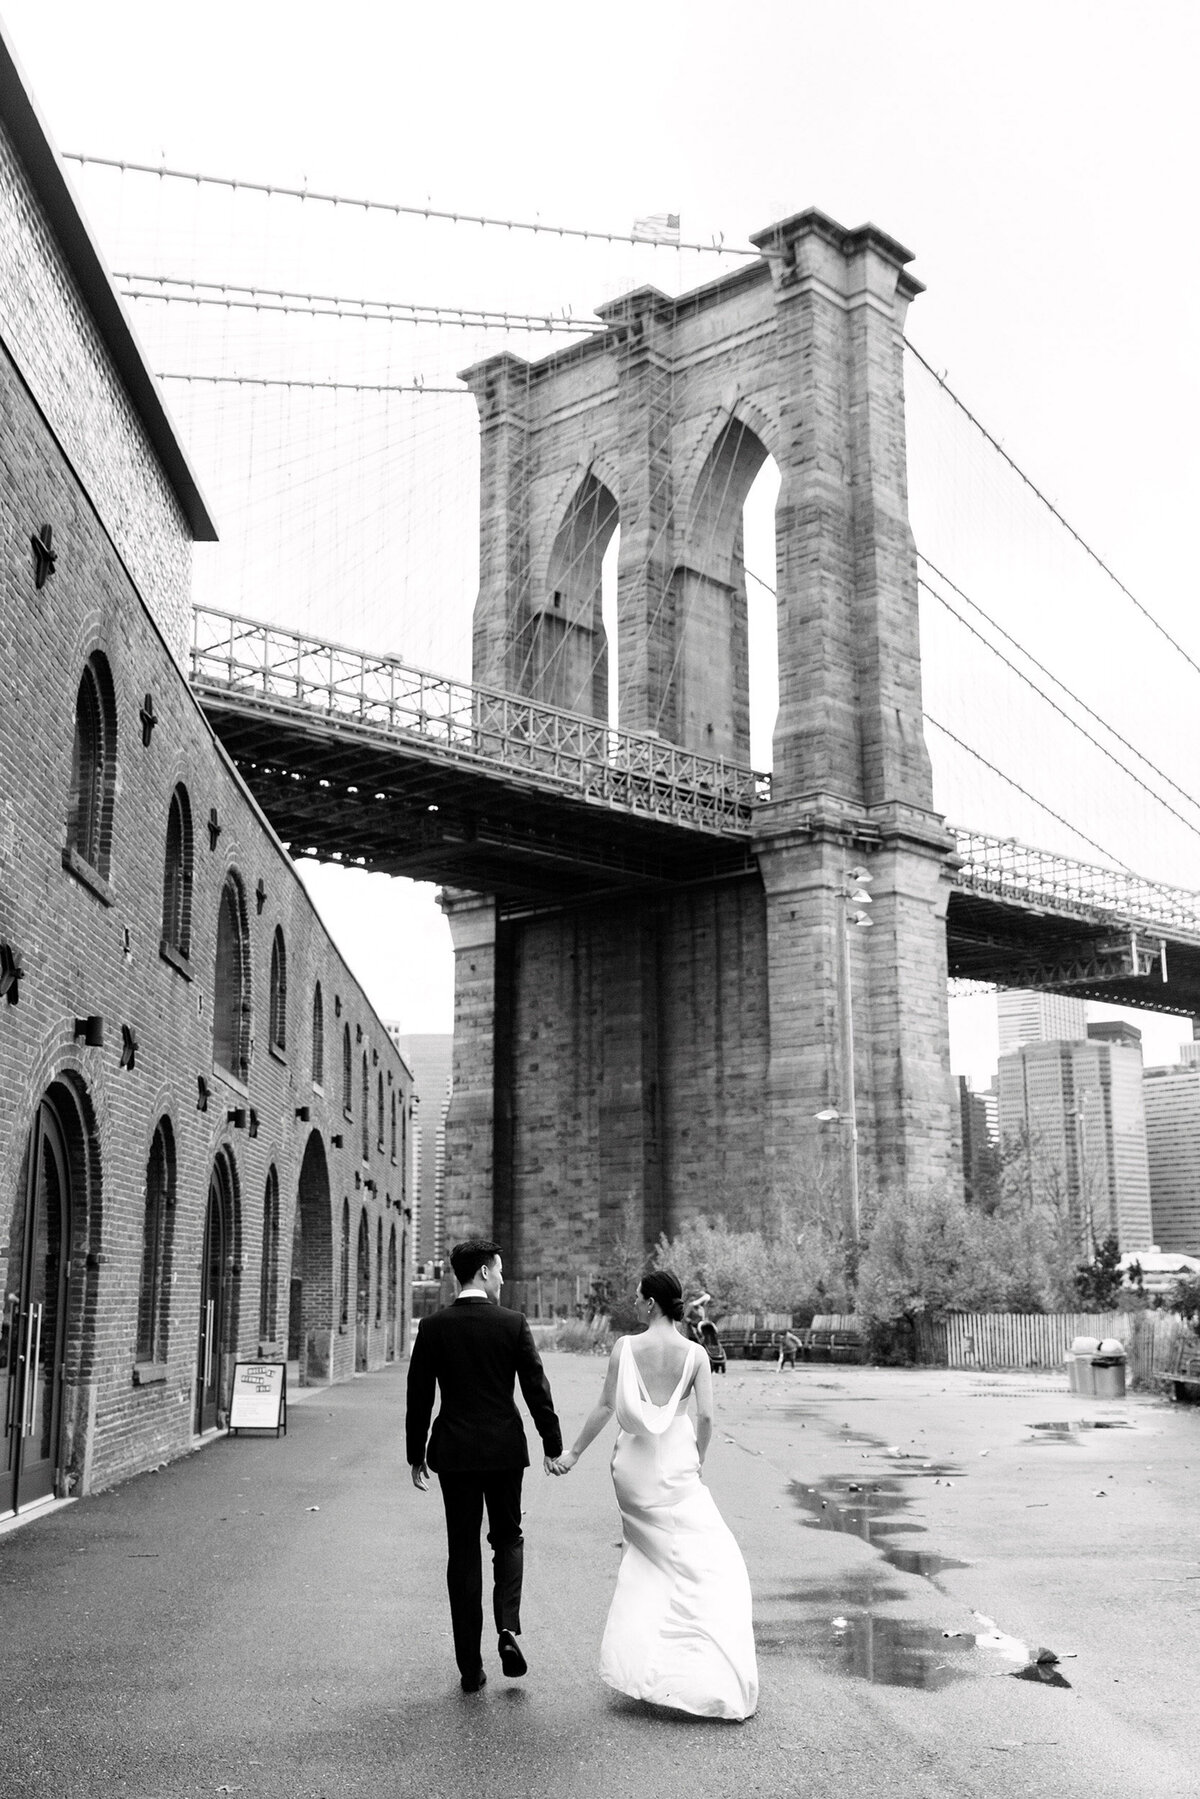 Dumbo_Loft_0346_Cate_Bryan_Wedding_2217